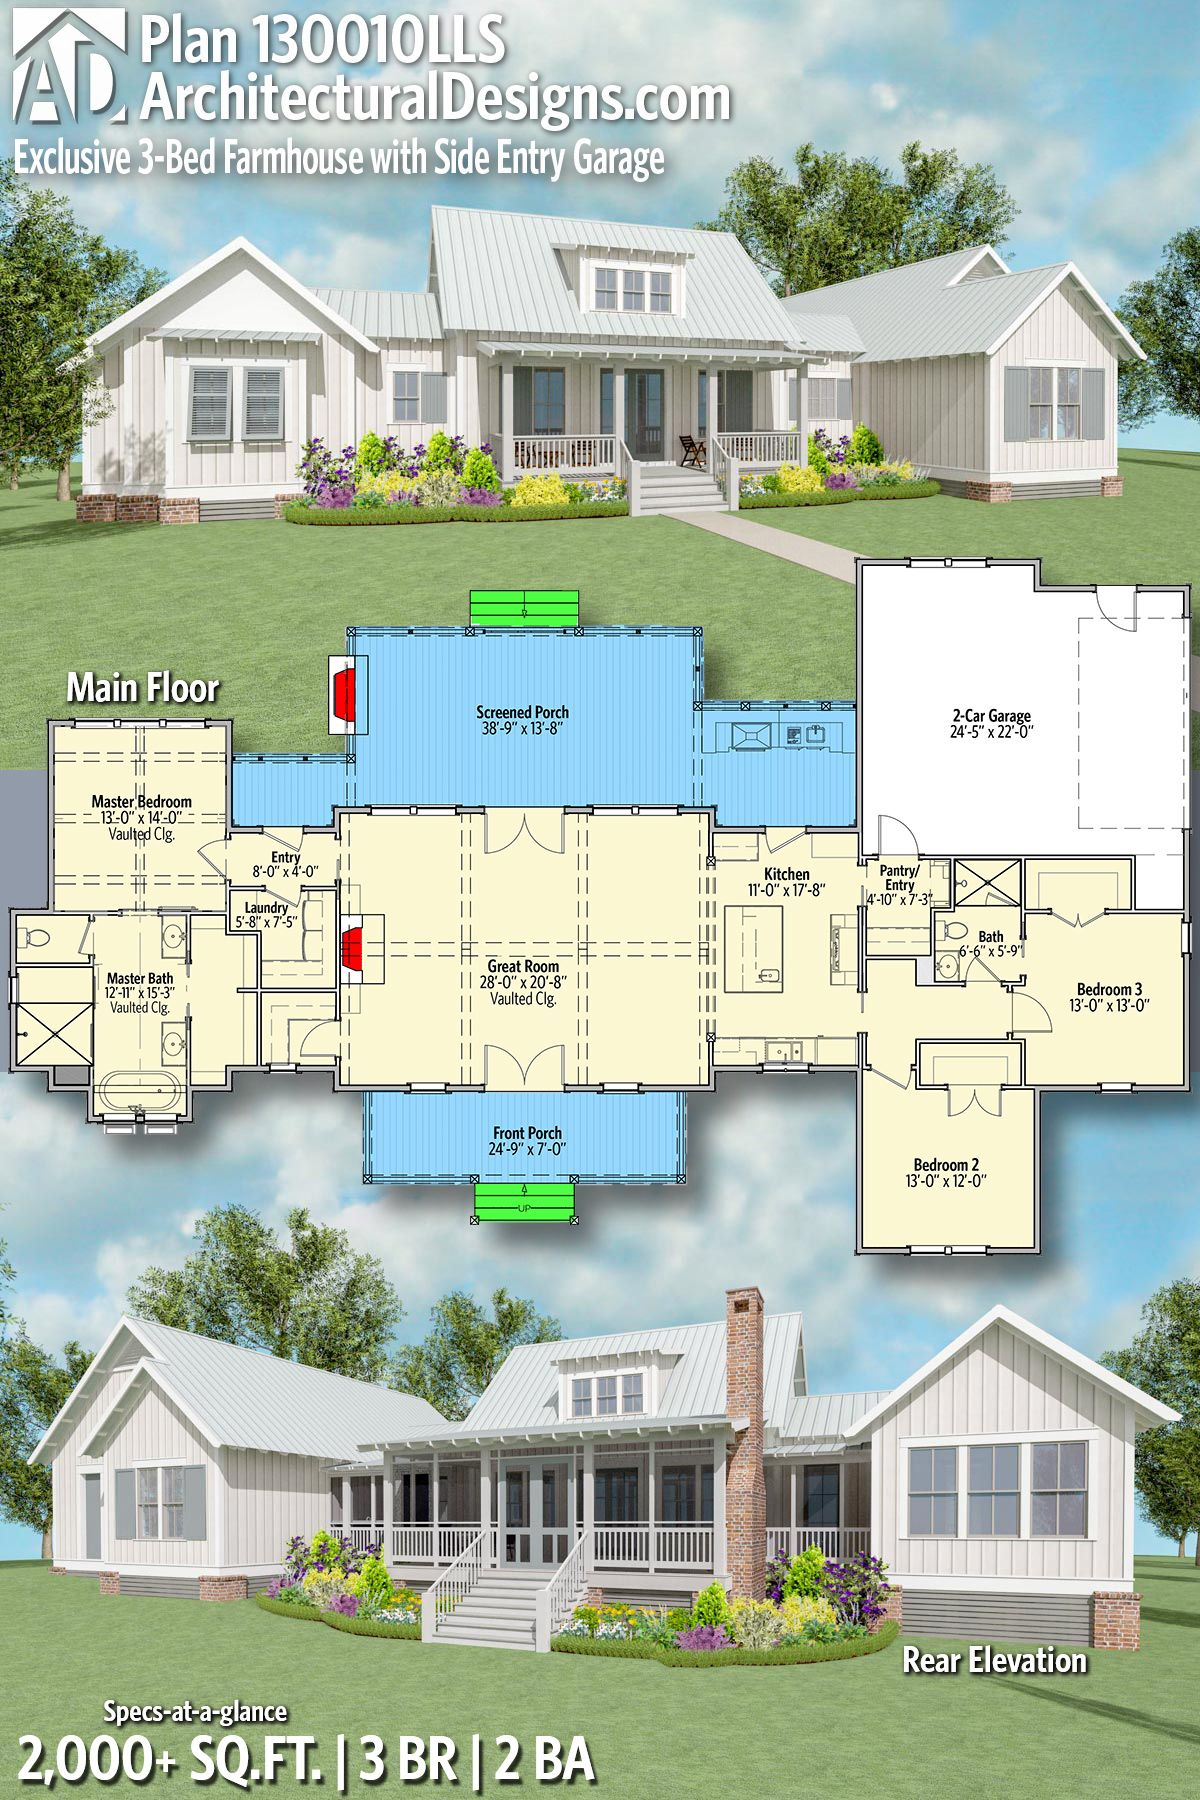 Plan 130010lls Exclusive Farmhouse Plan With Side Entry Garage Farmhouse Plans Exclusive House Plan House Plans Farmhouse